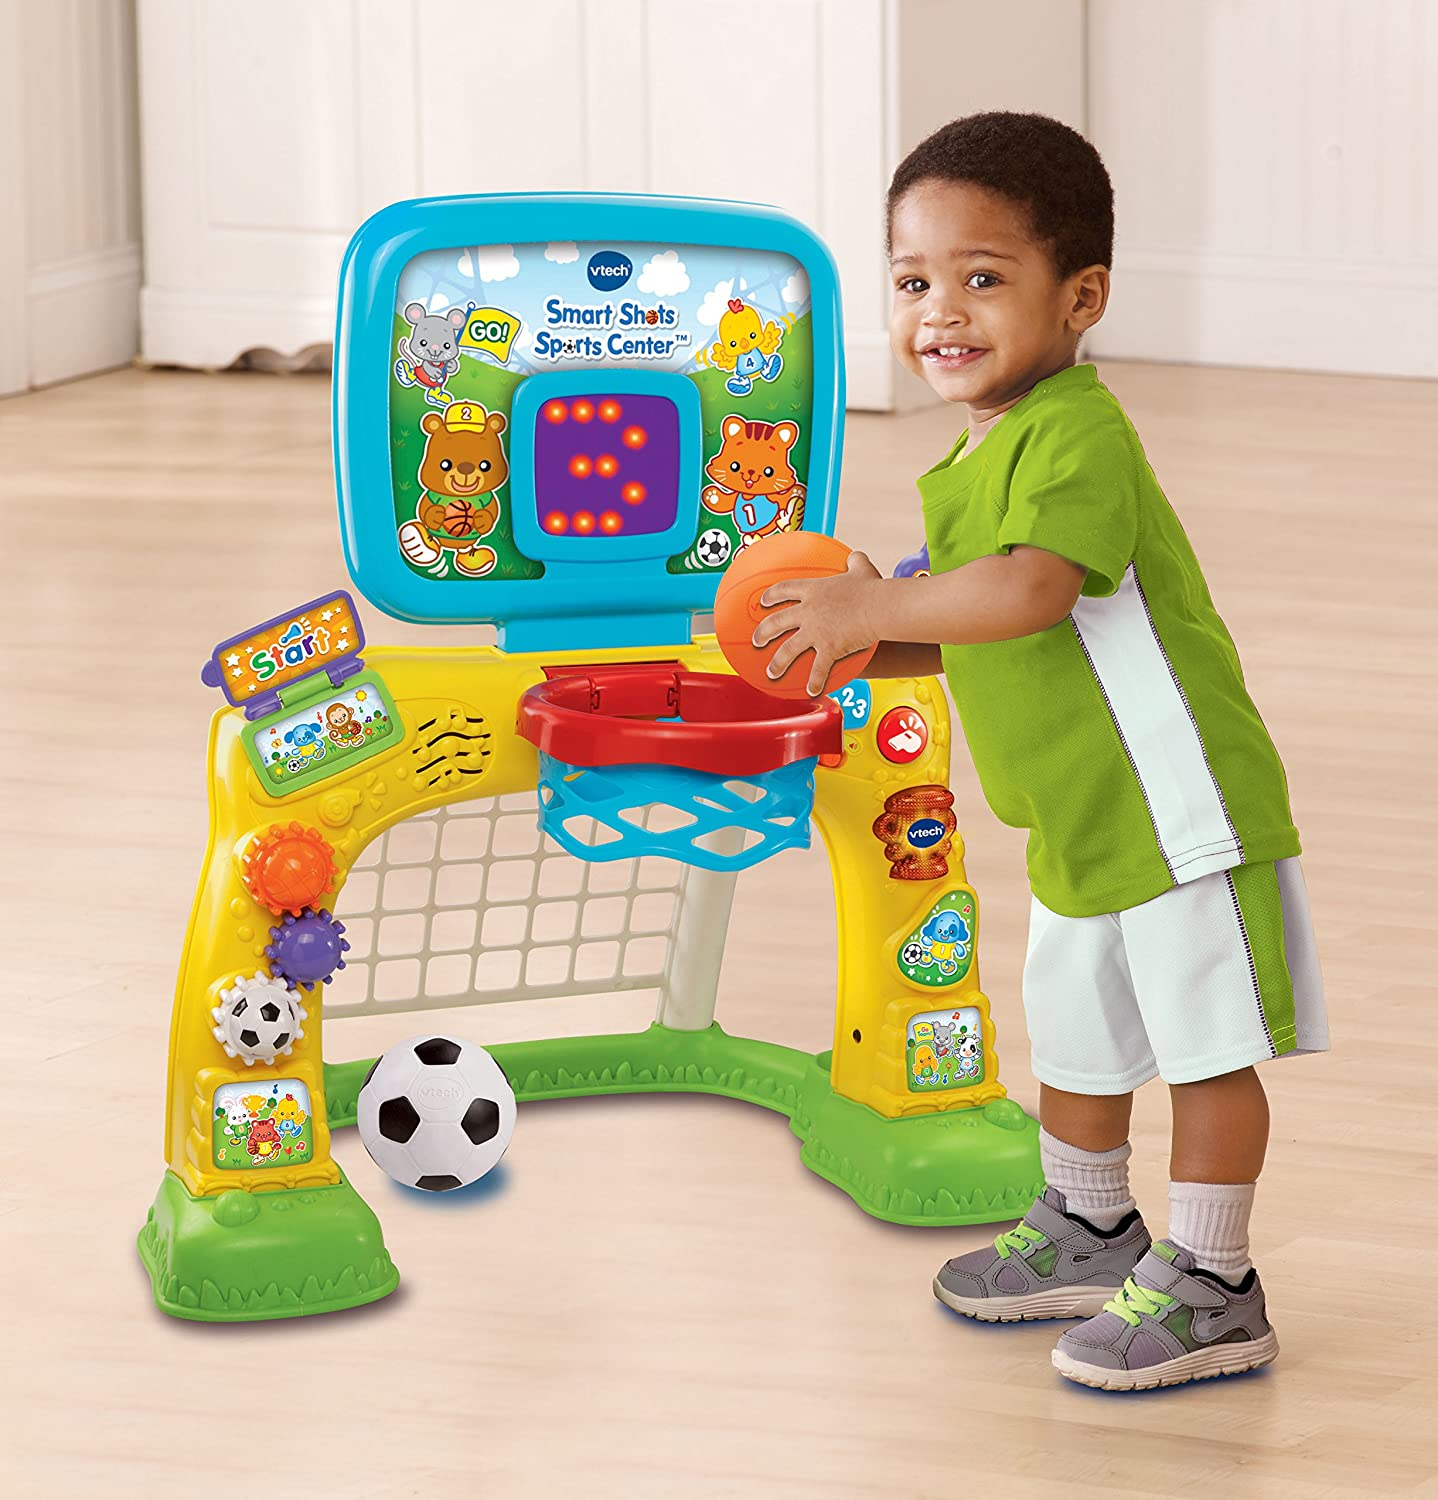 Top Learning toys for Two Year Olds Pics